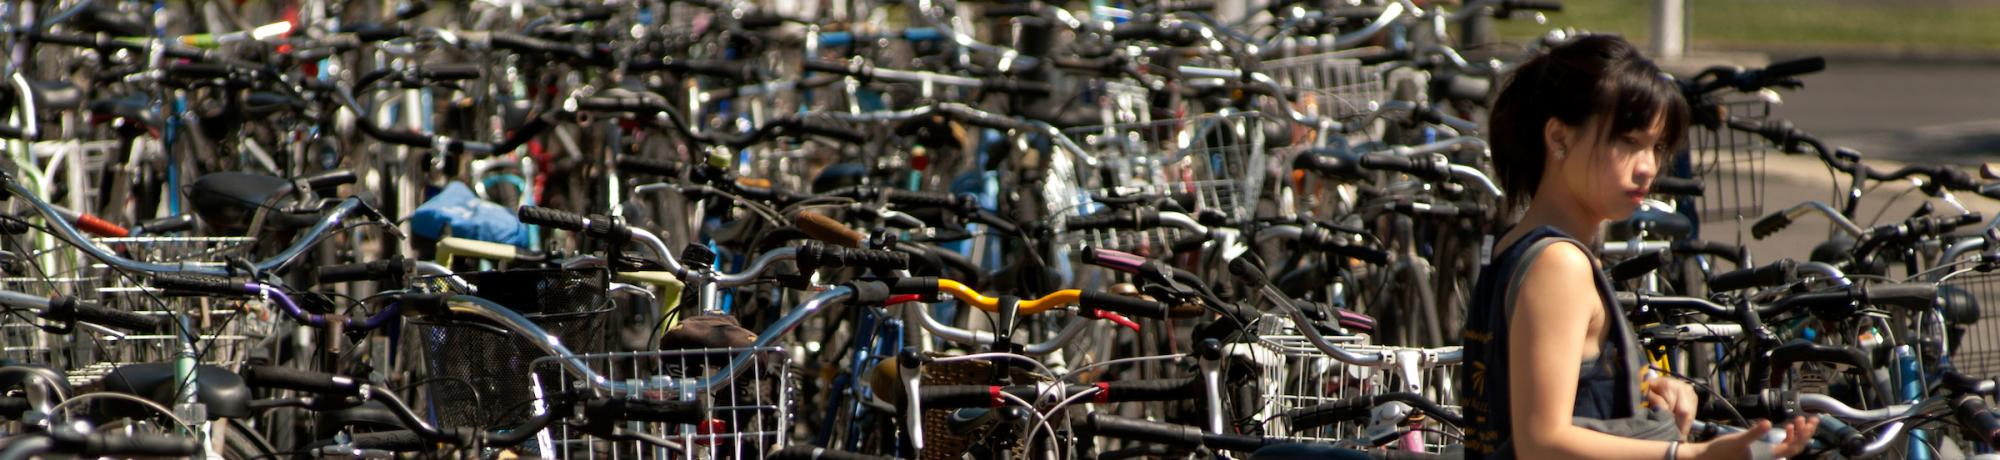 Student Surrounded by Bicycles